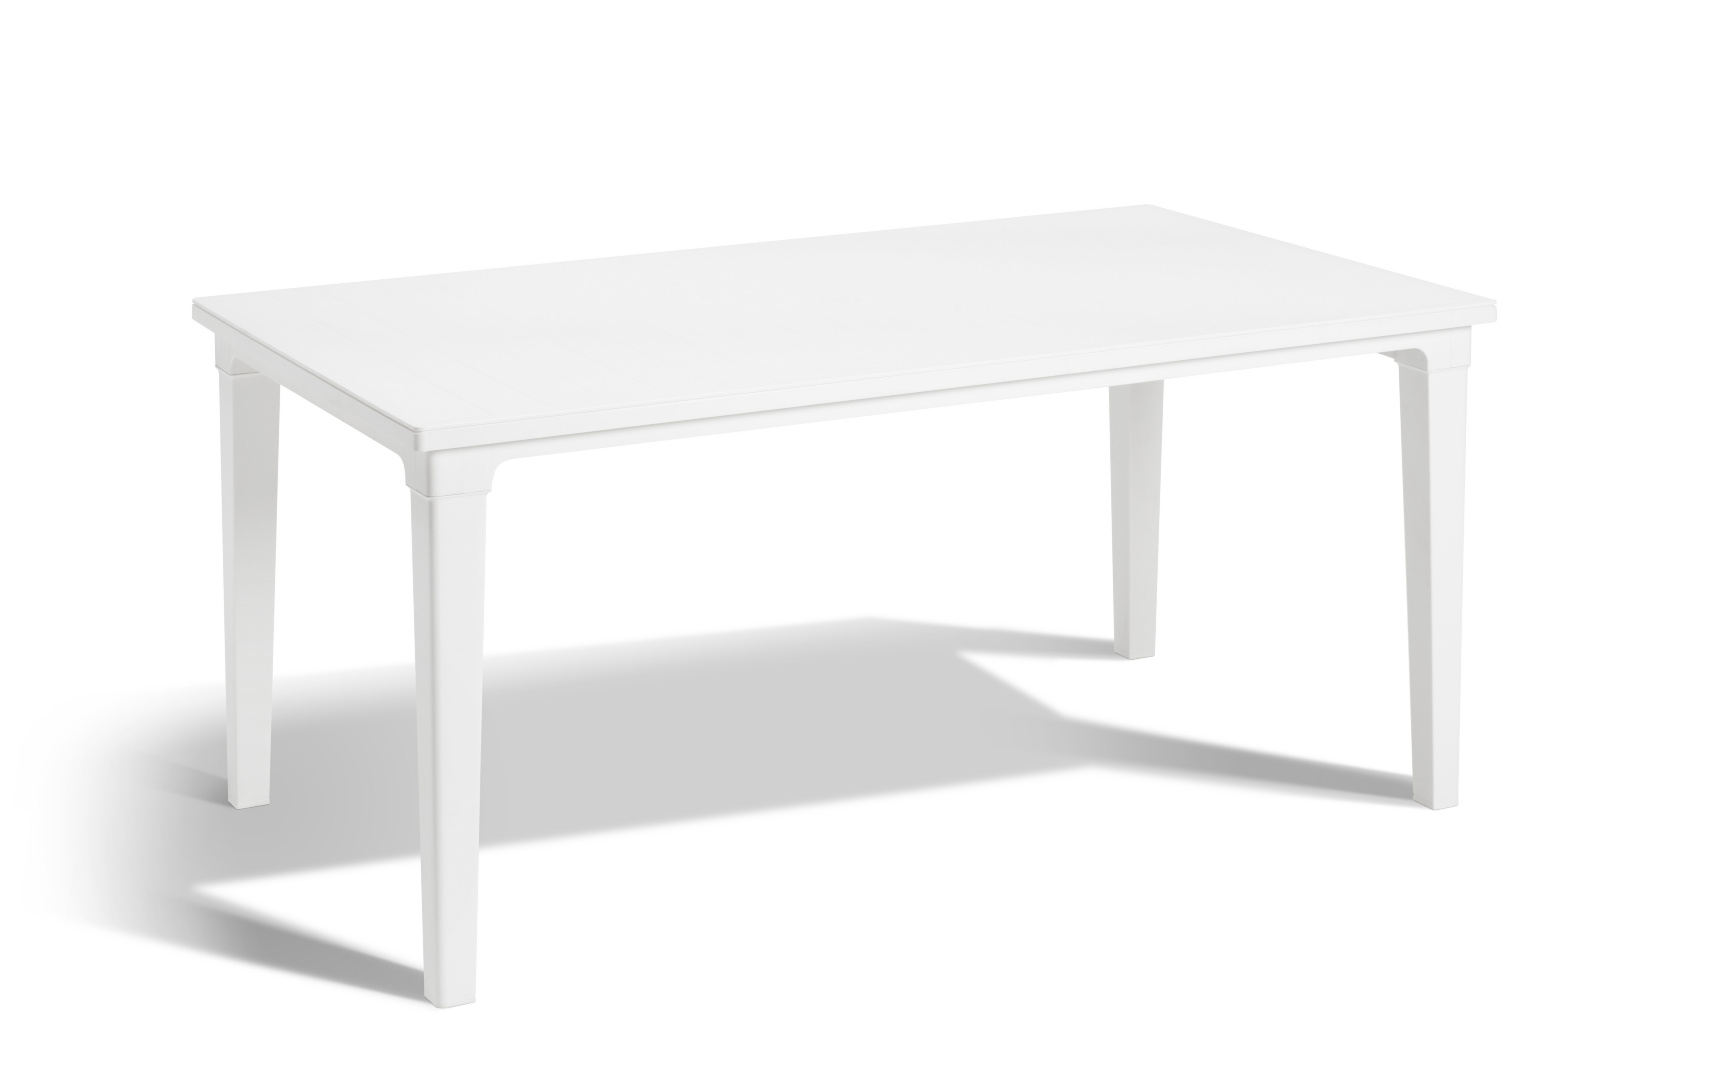 Table Basse Jardin Blanche Table Basse De Jardin Allibert Ezooq